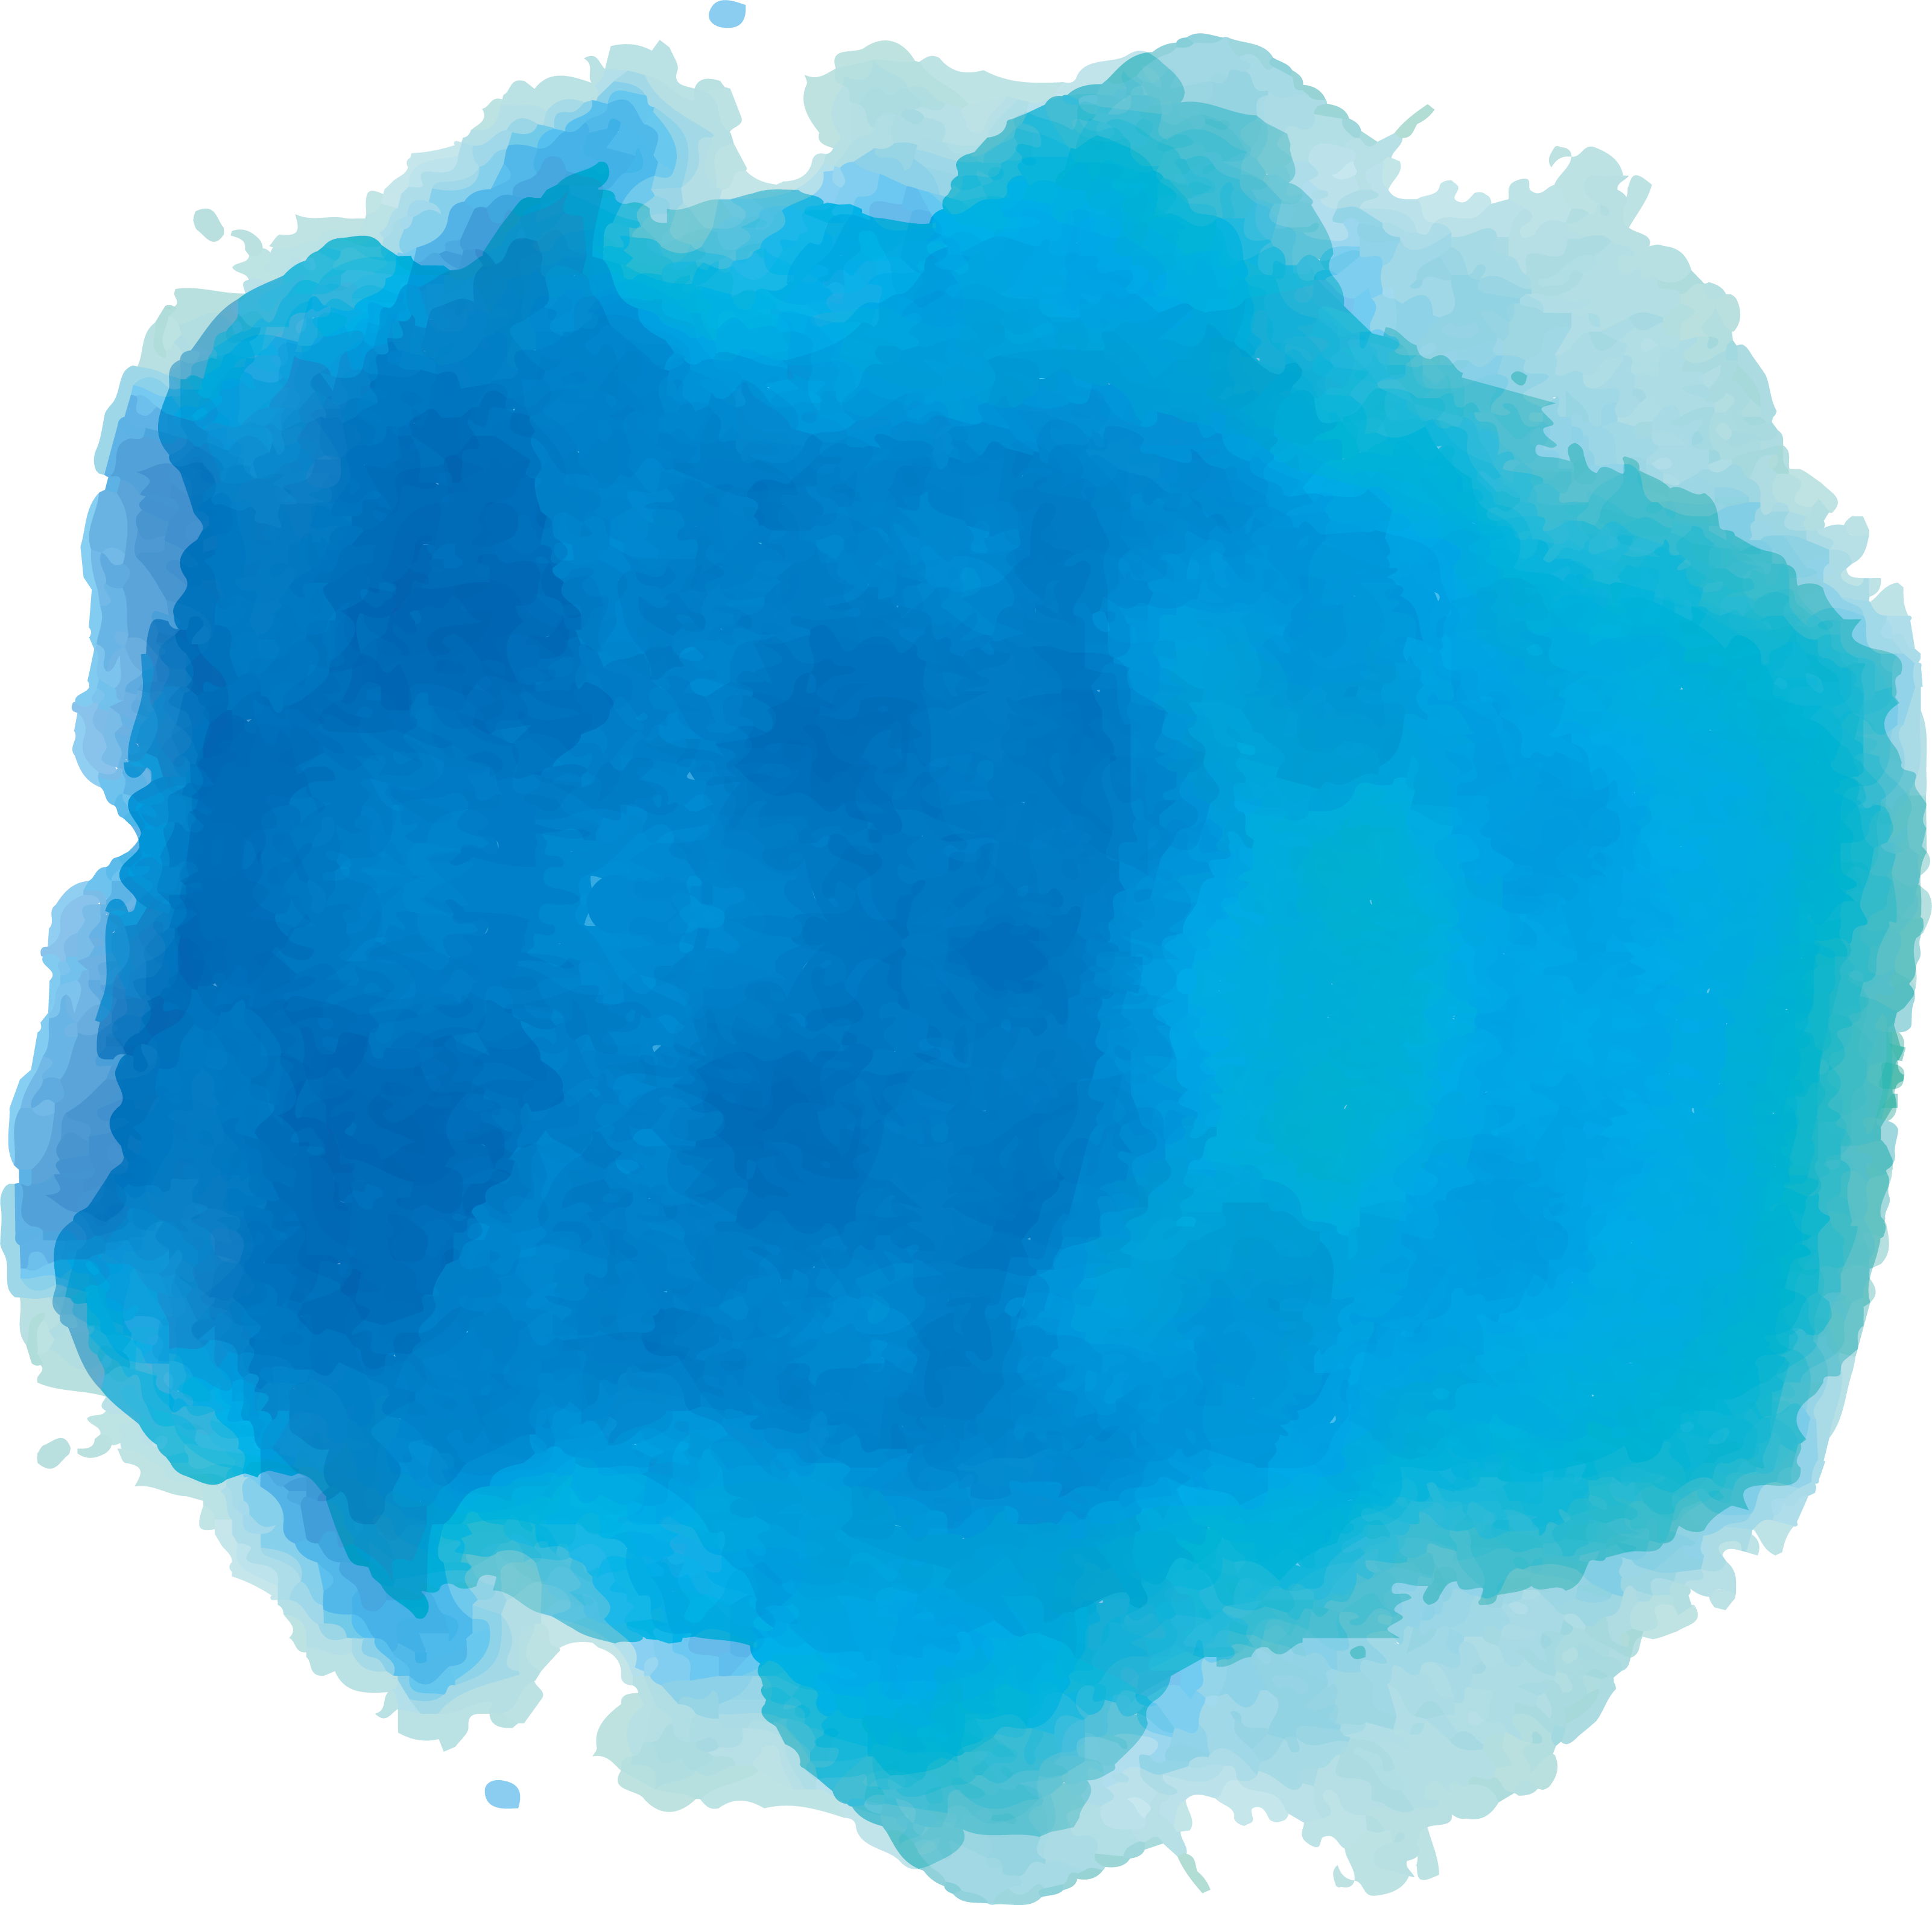 Watercolor dots png. Blue ink painting sky